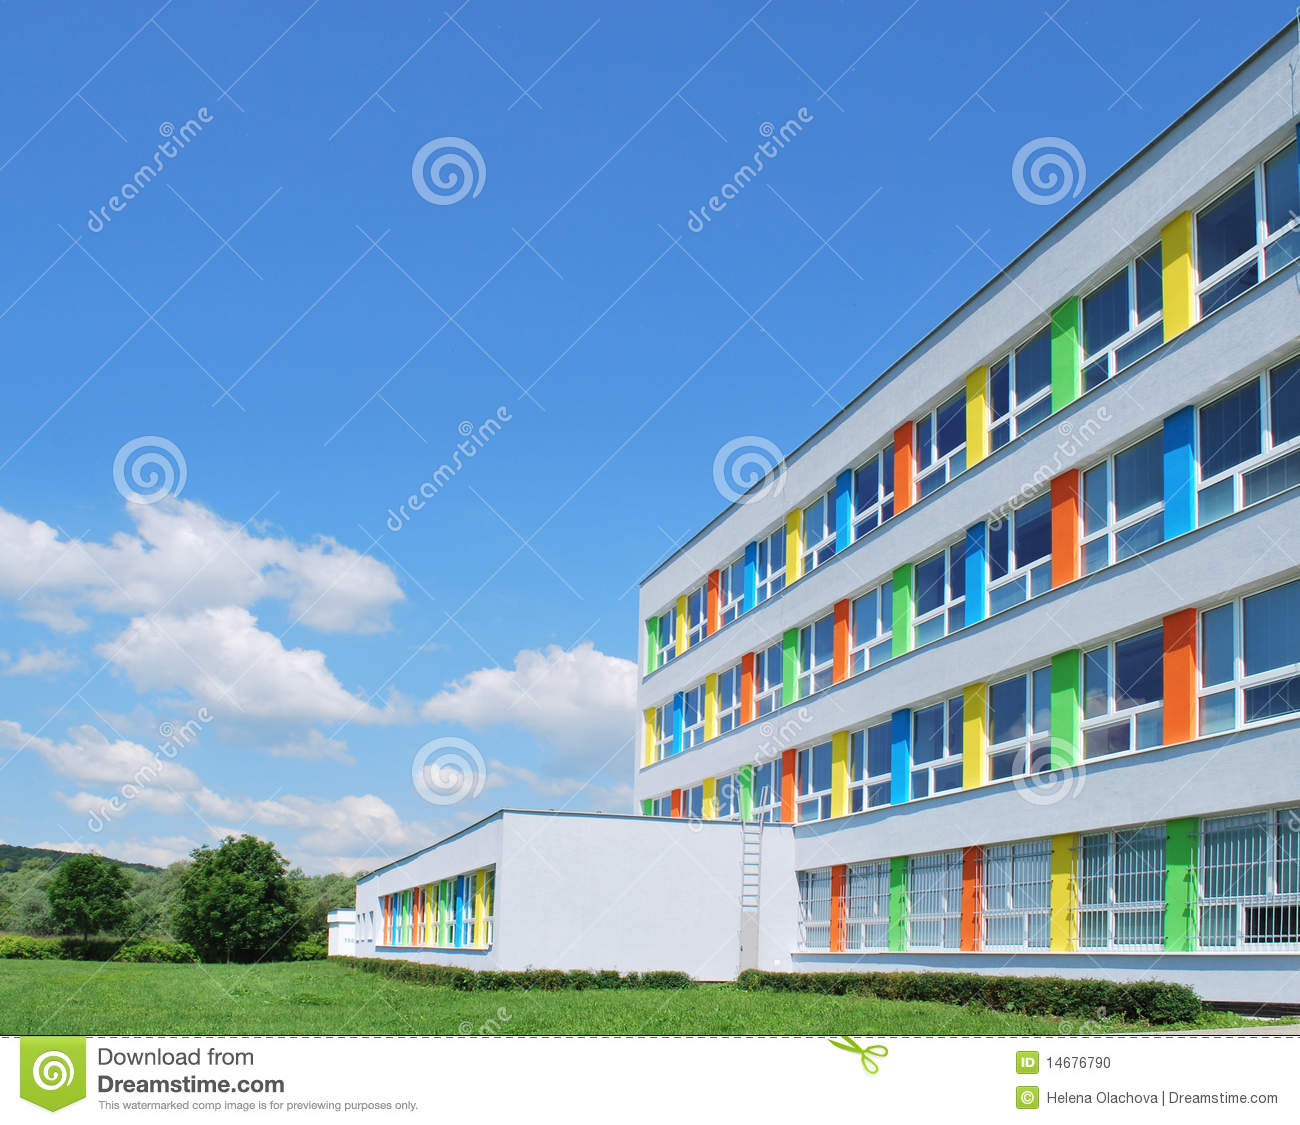 Set 23 besides Royalty Free Stock Image Home Office Living Room House Interior Balcony View Image23675816 likewise 221240 also Royalty Free Stock Image Architects Work Image21667396 additionally Tumalo. on modern house plans